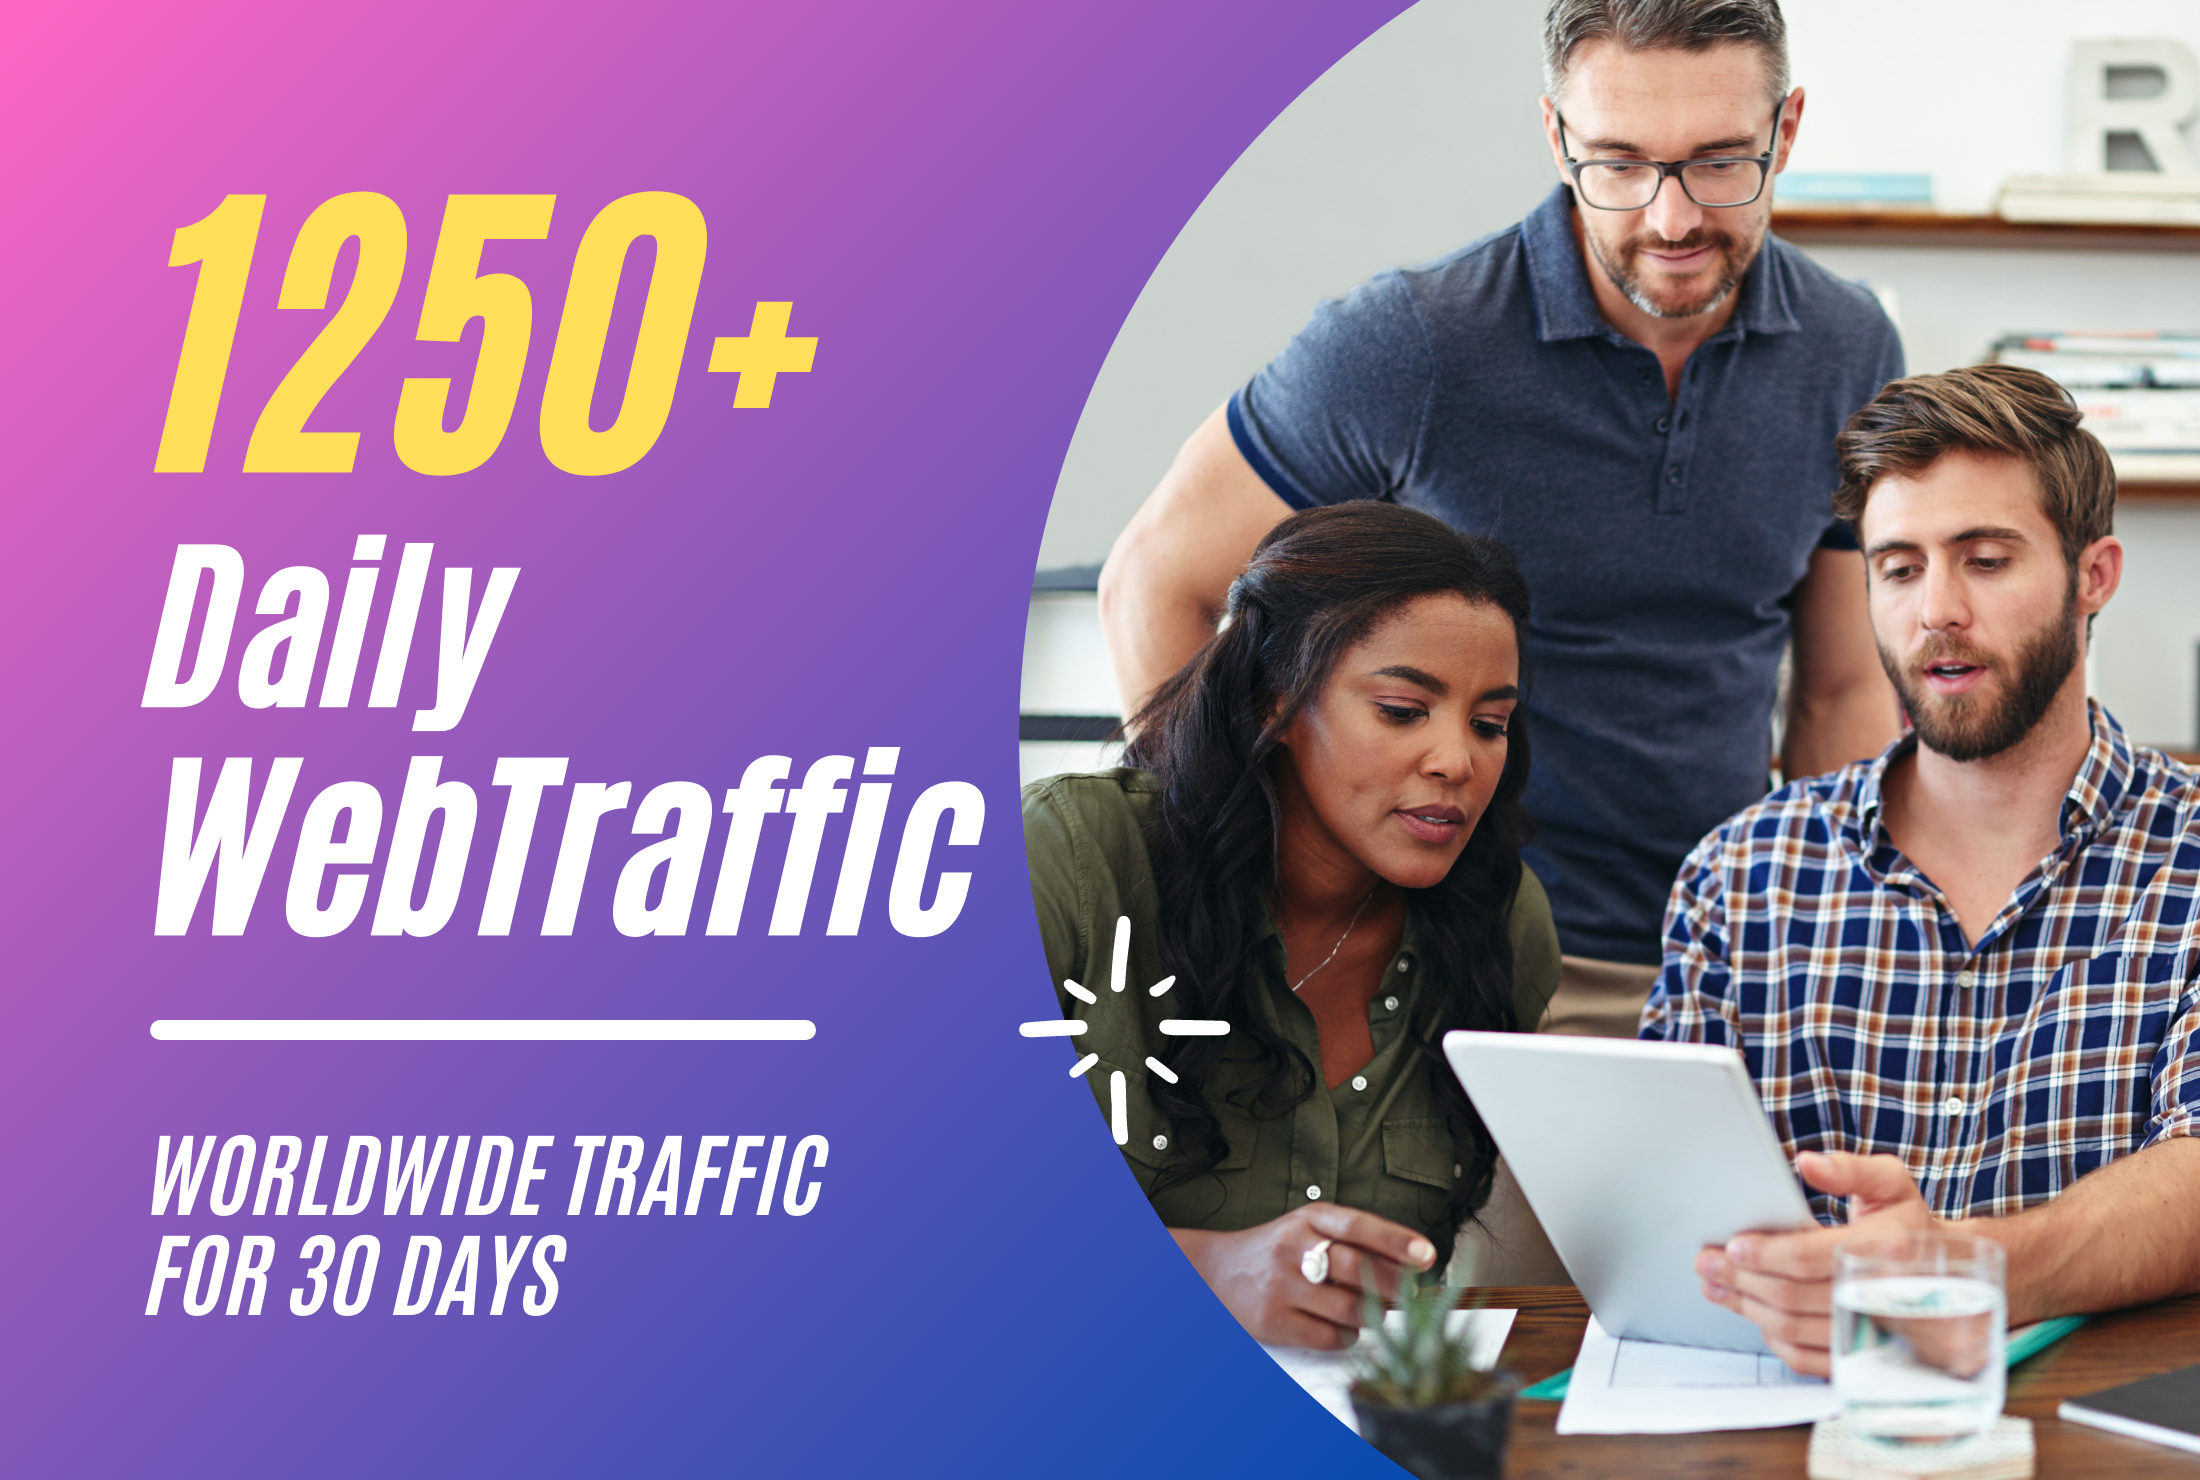 Drive 1250 Daily Web Traffic Worldwide For 30 Days